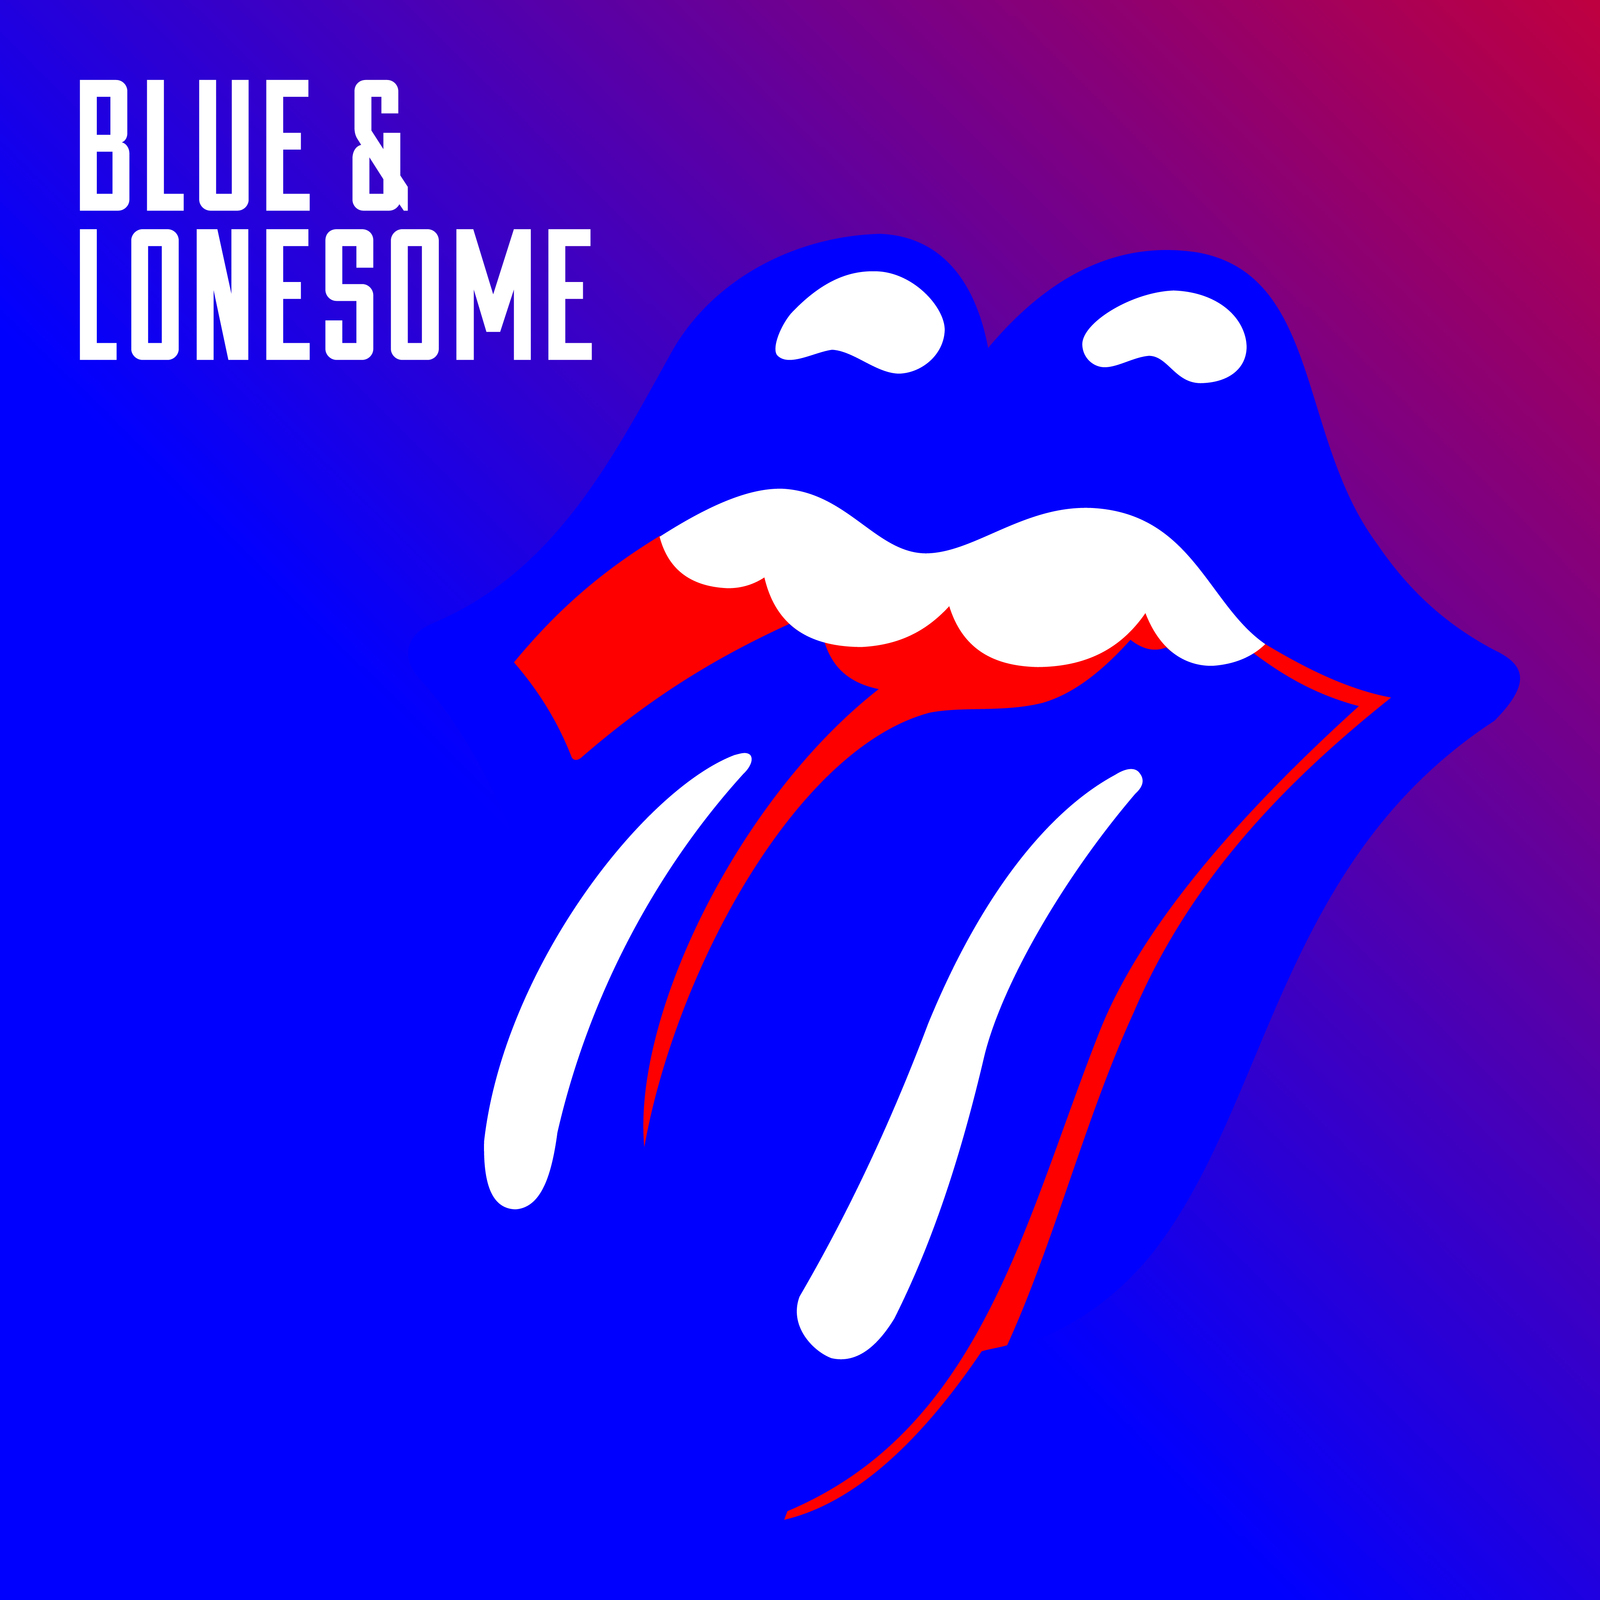 Blue & Lonesome - Digipack by The Rolling Stones image